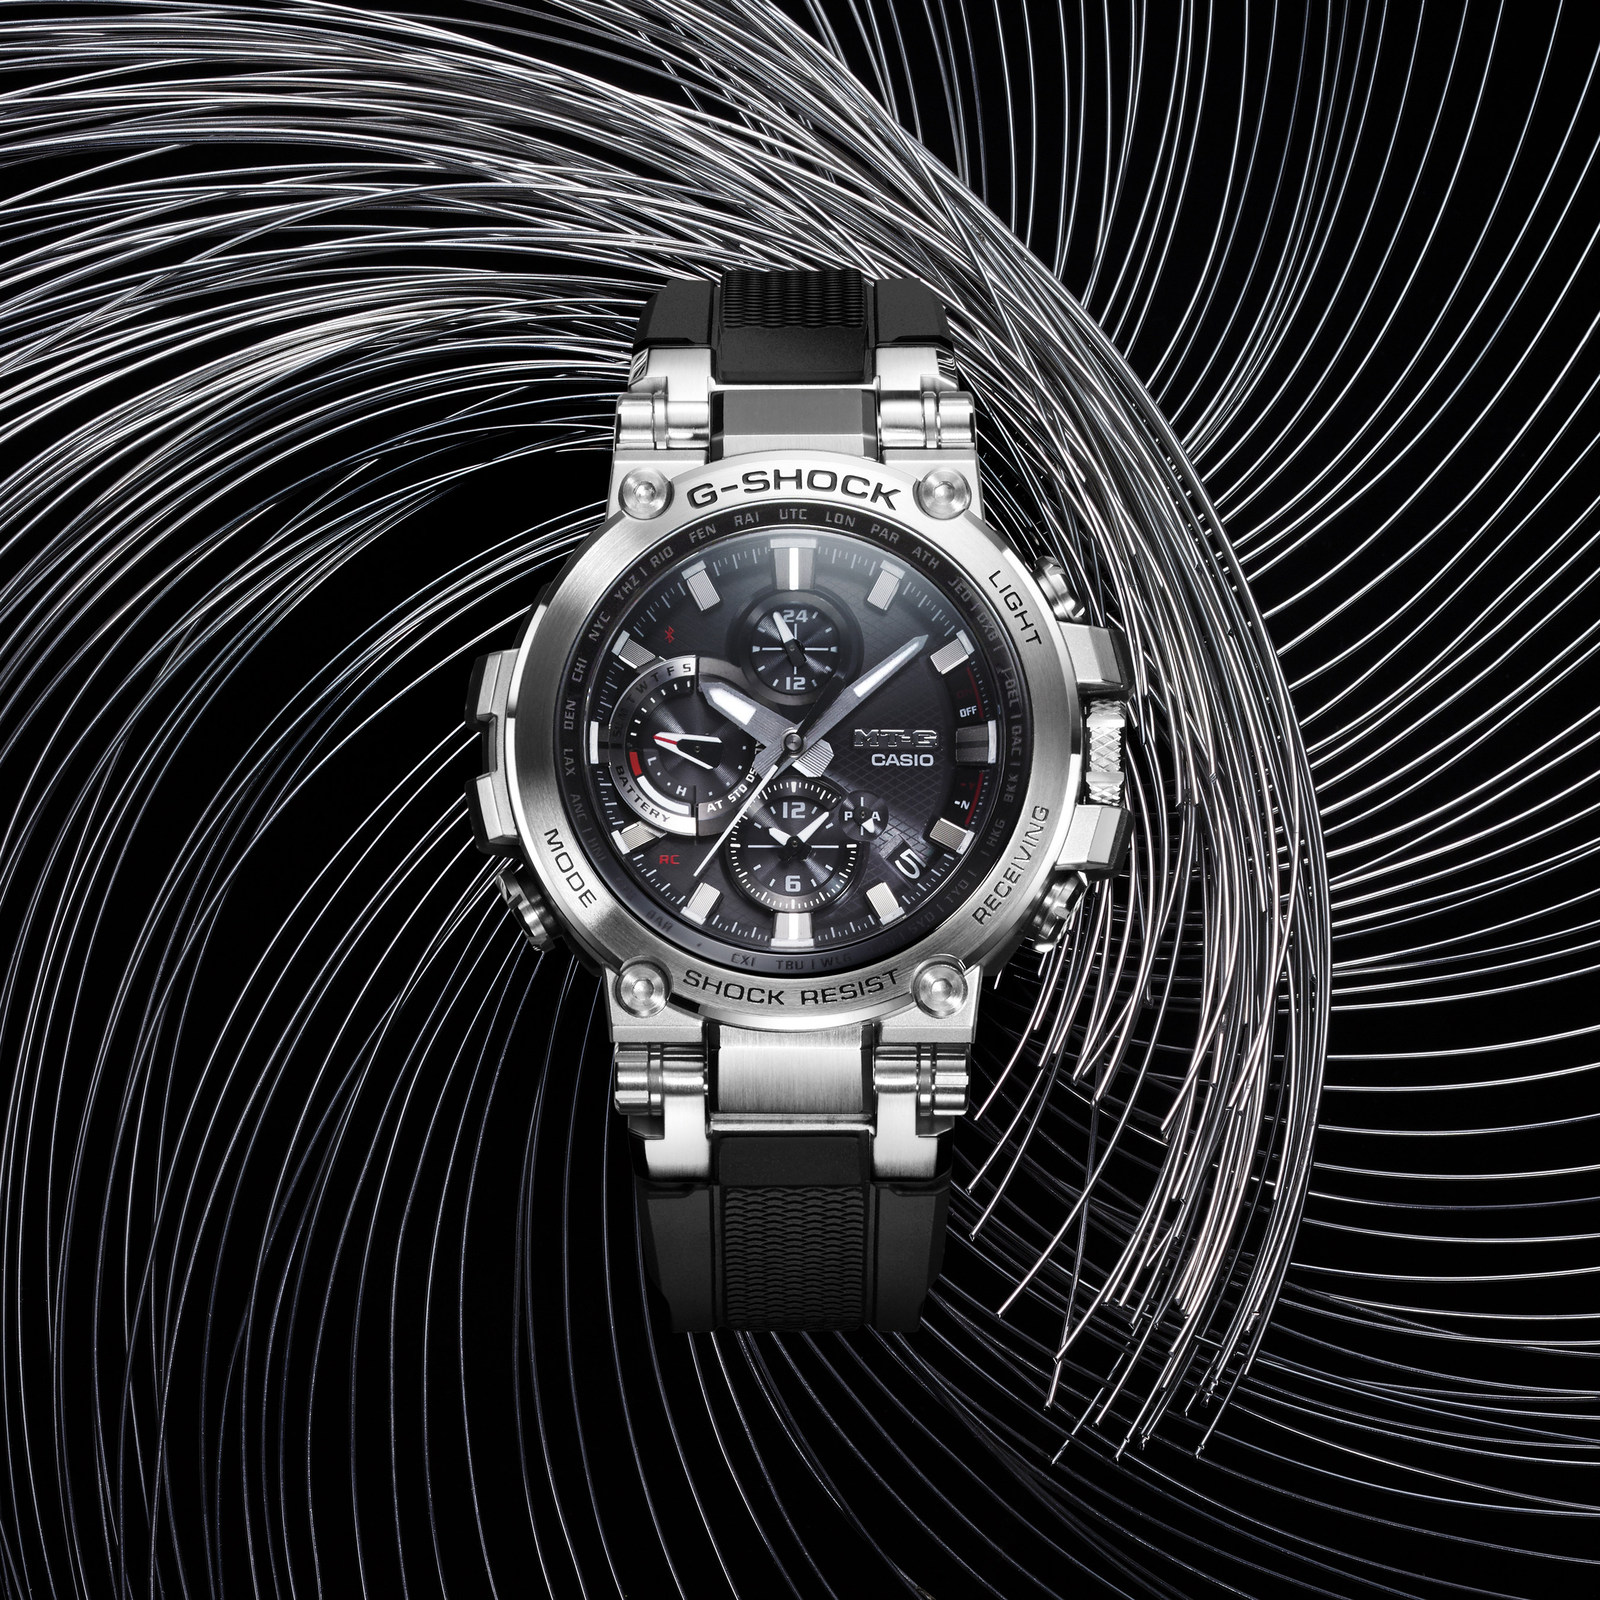 Casio G-SHOCK Elevates Luxury Line With First-Ever Connected MT-G Timepieces